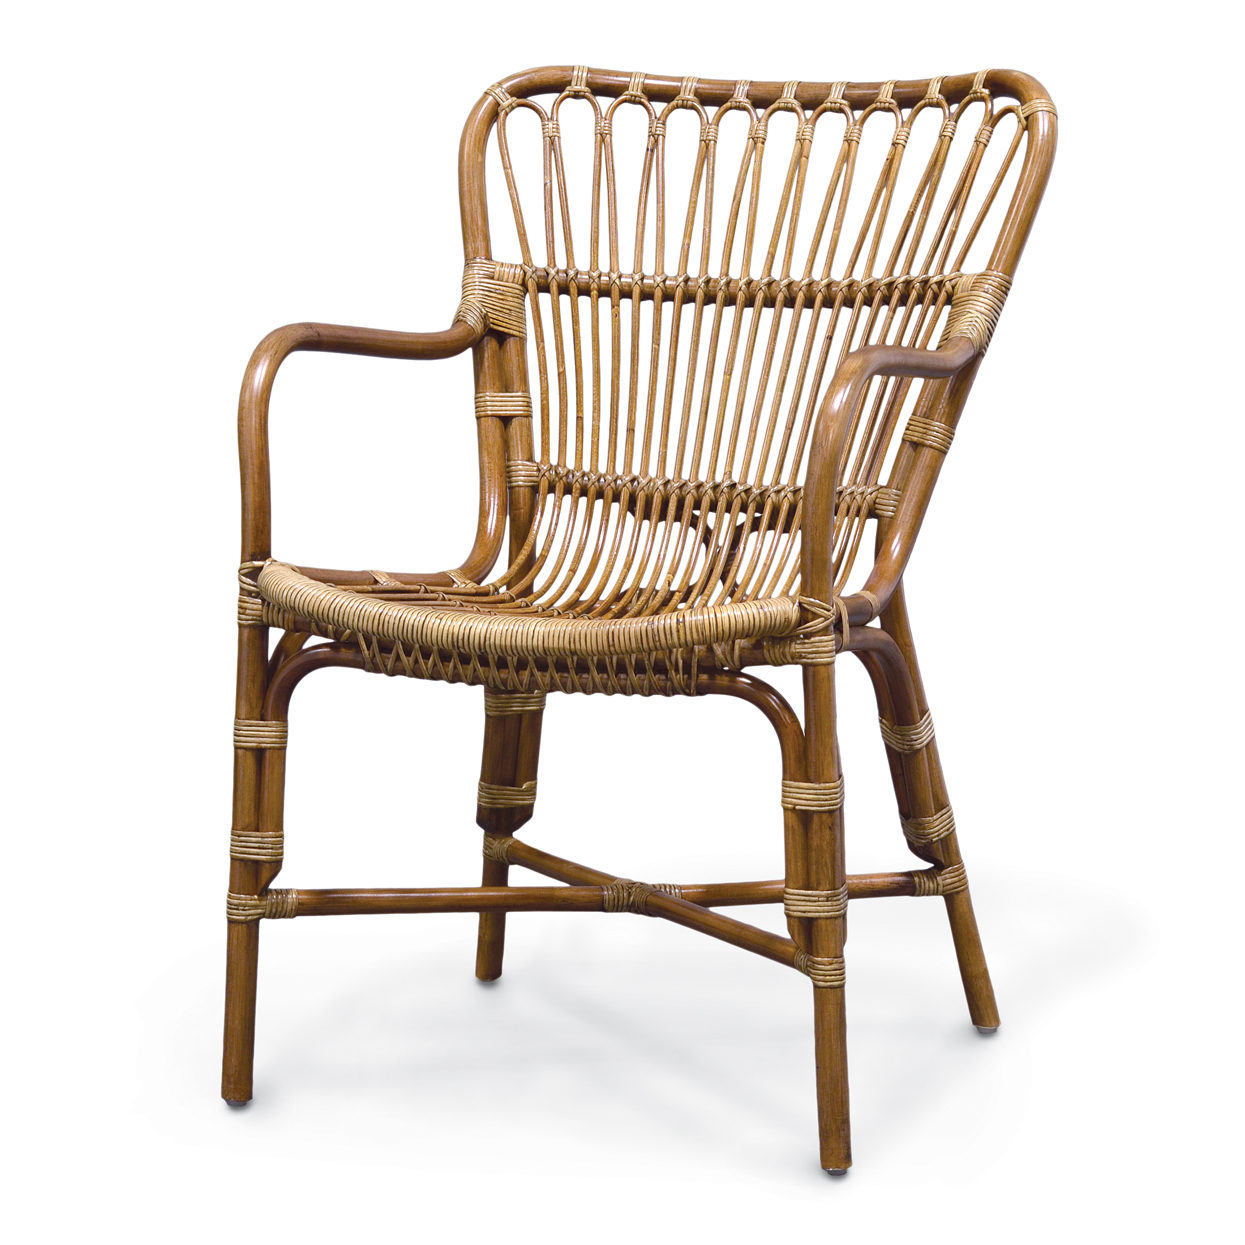 Retro Rattan Chair Sugarwood Unique Style Furniture